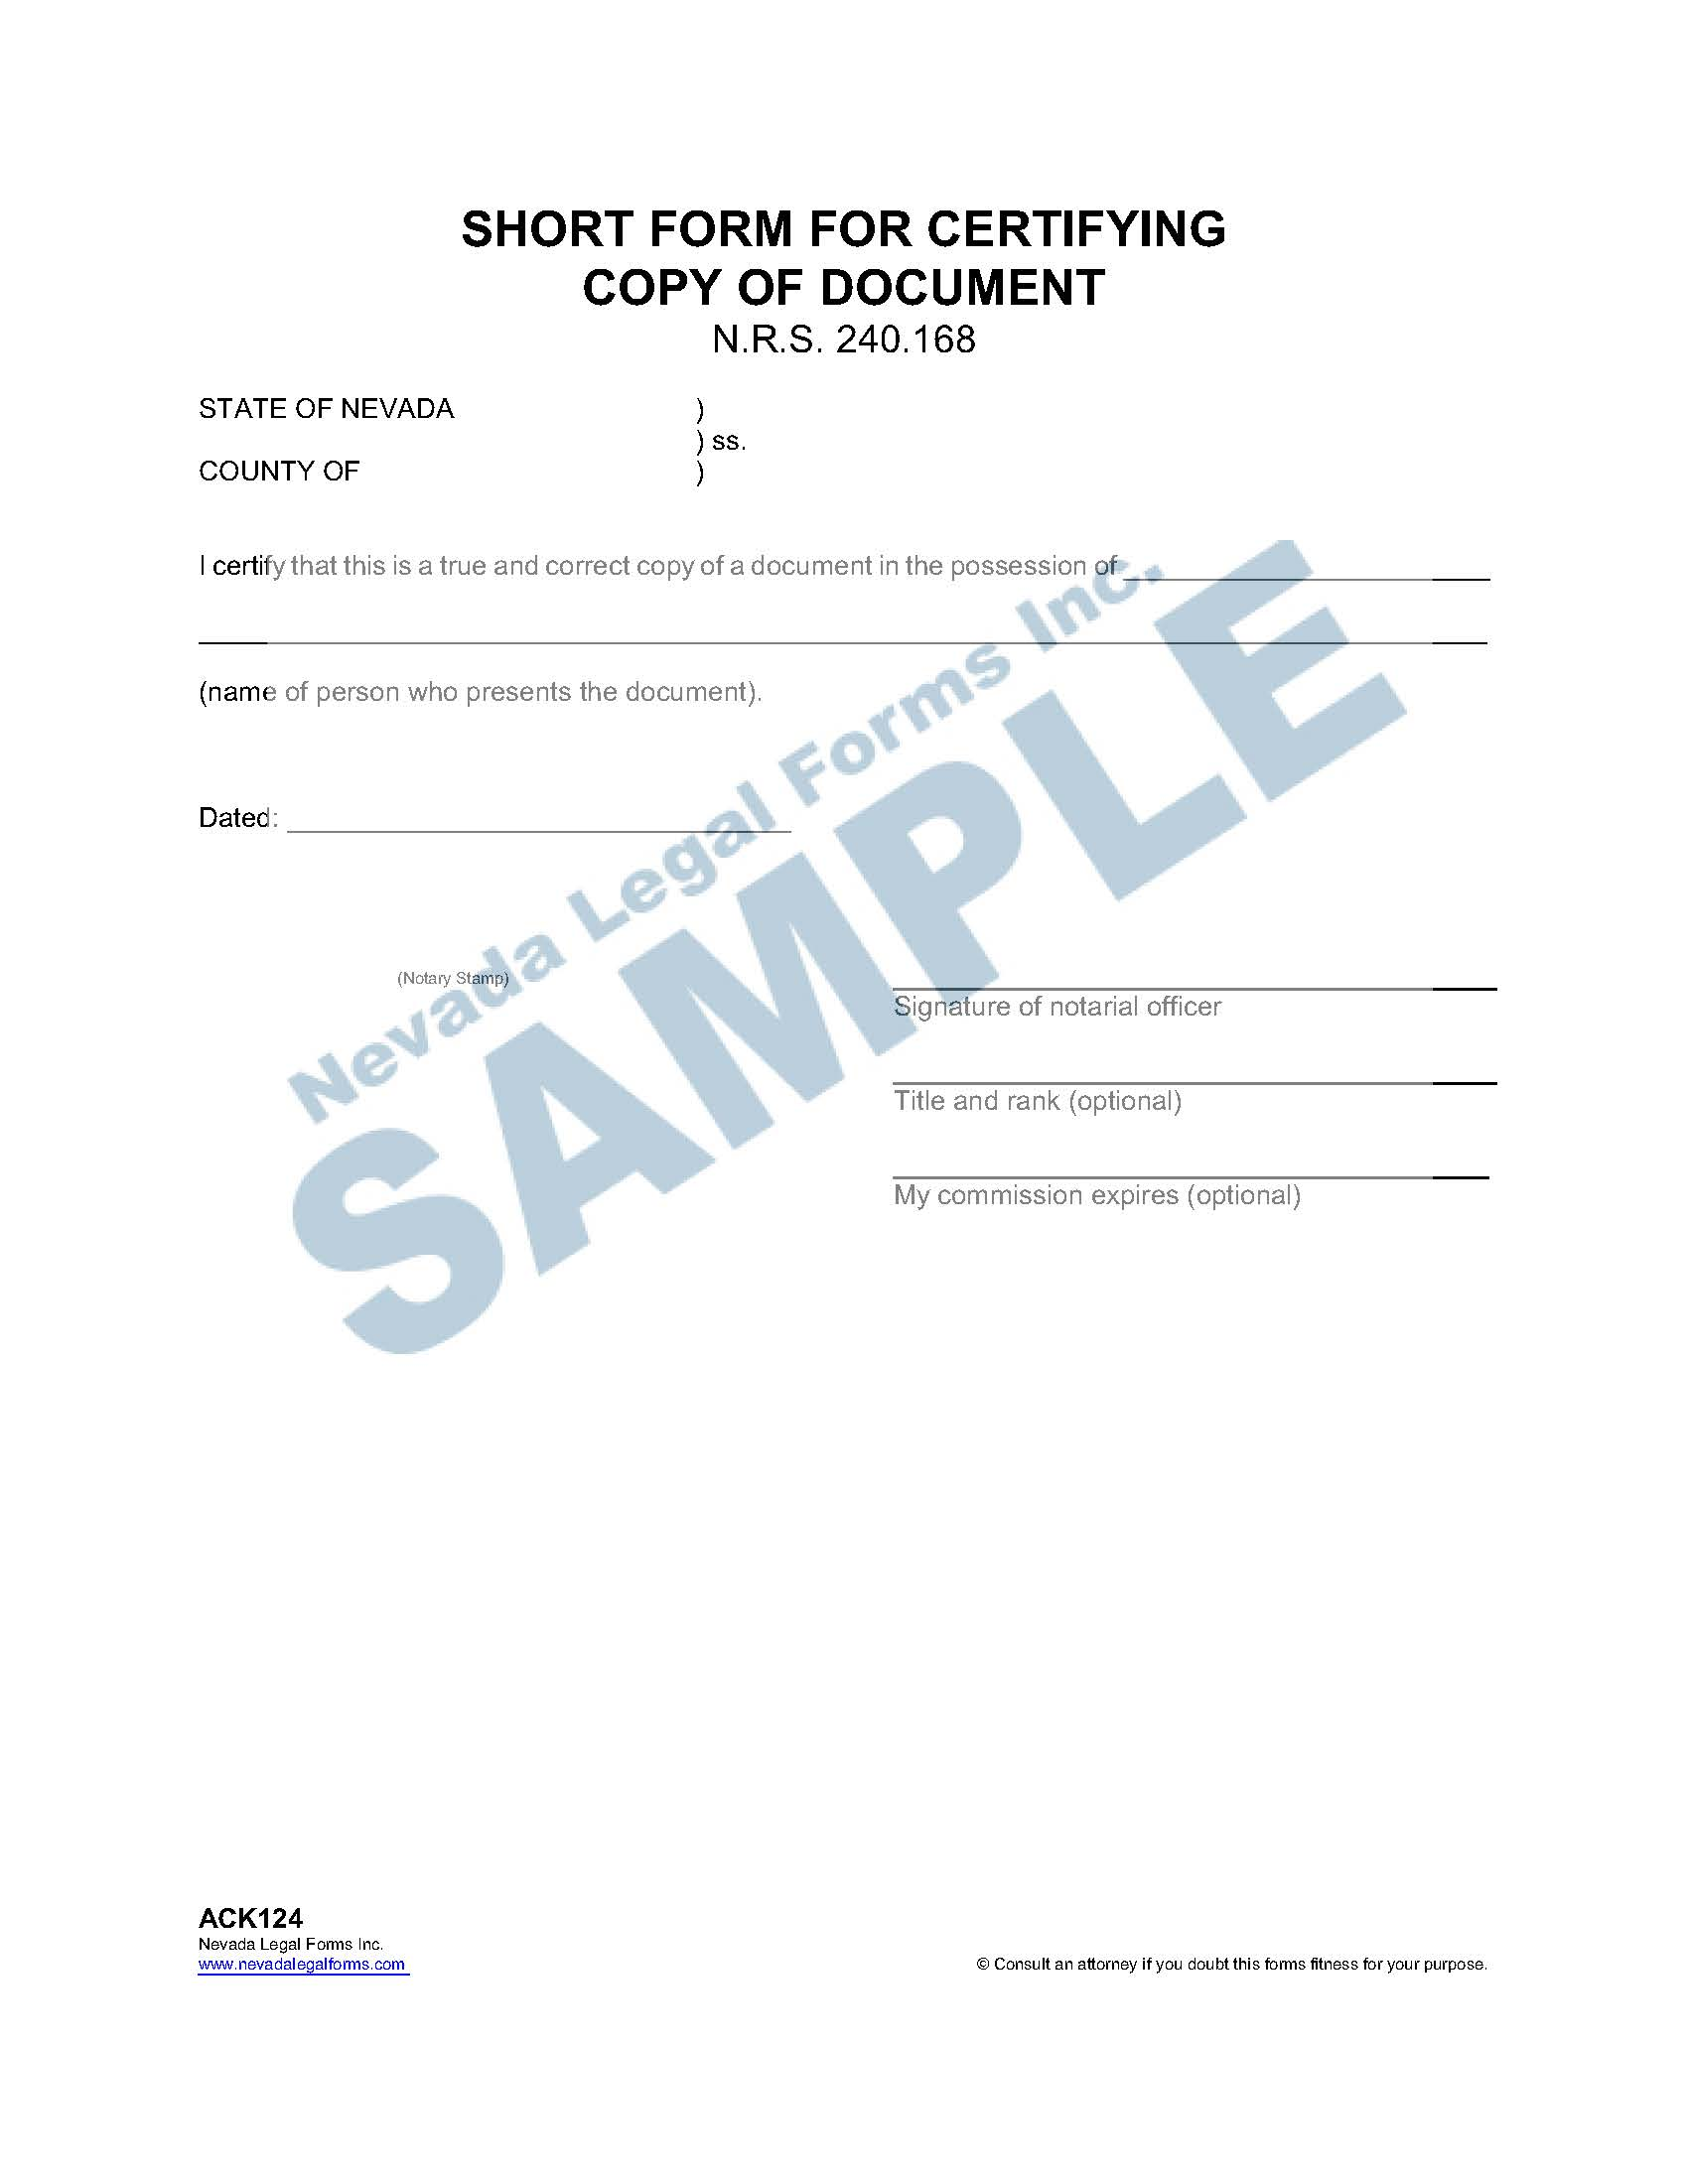 Short Form For Certifying Copy Of A Document